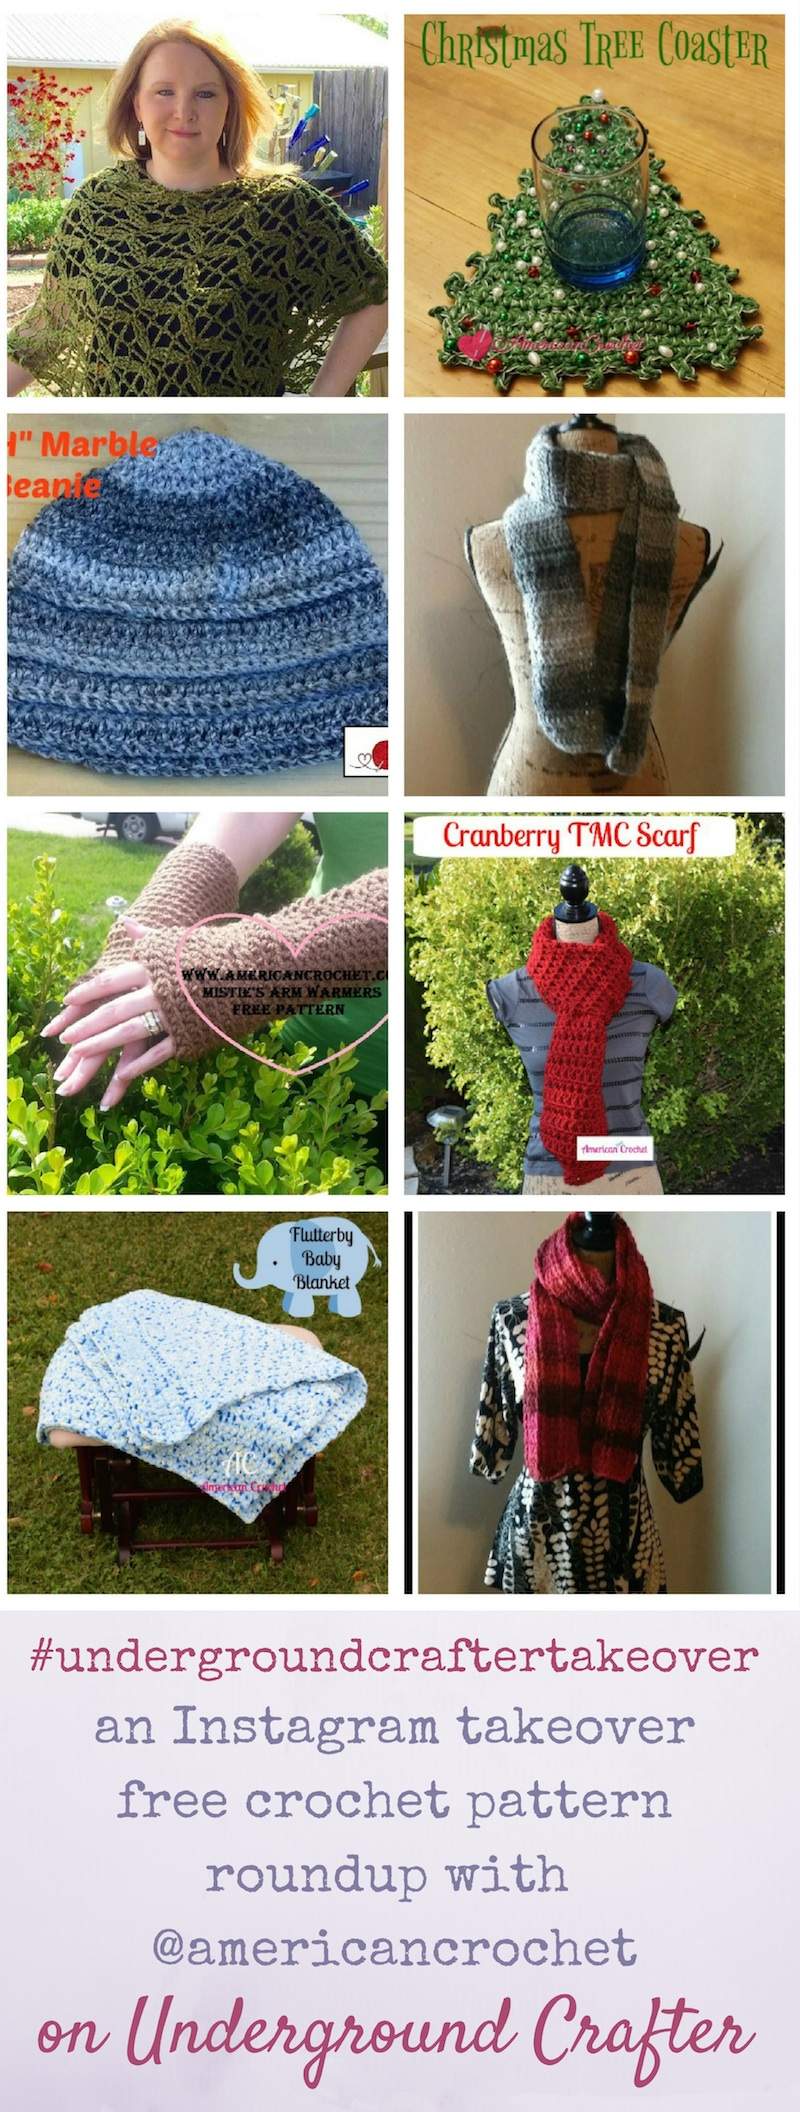 An Instagram takeover free crochet pattern roundup featuring American Crochet on Underground Crafter